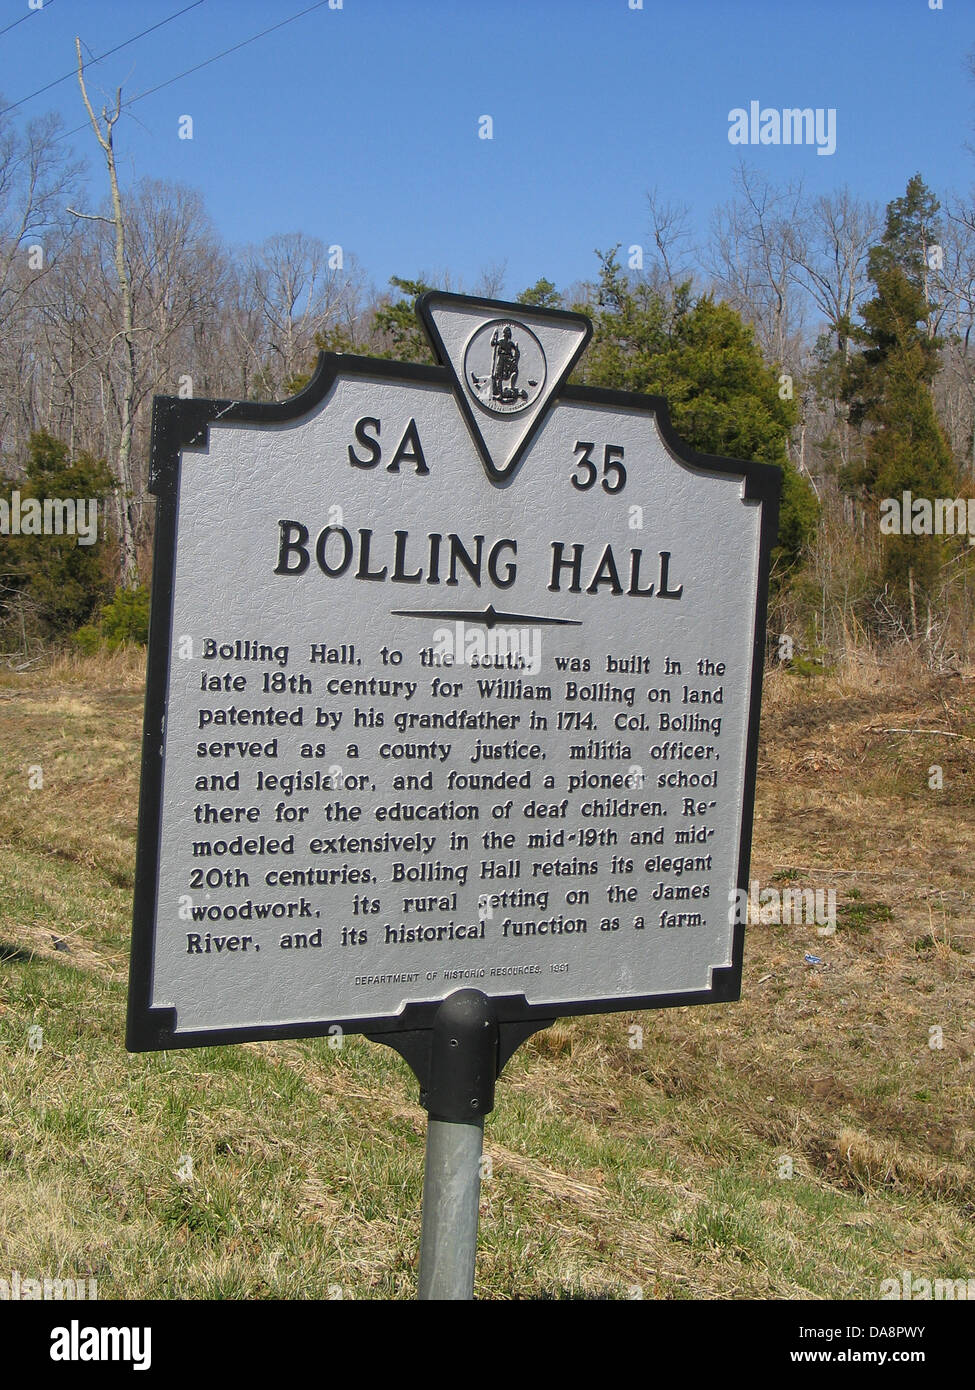 BOLLING HALL Bolling Hall, to the south, was built in the late 18th Century for William Bolling on land patented - Stock Image